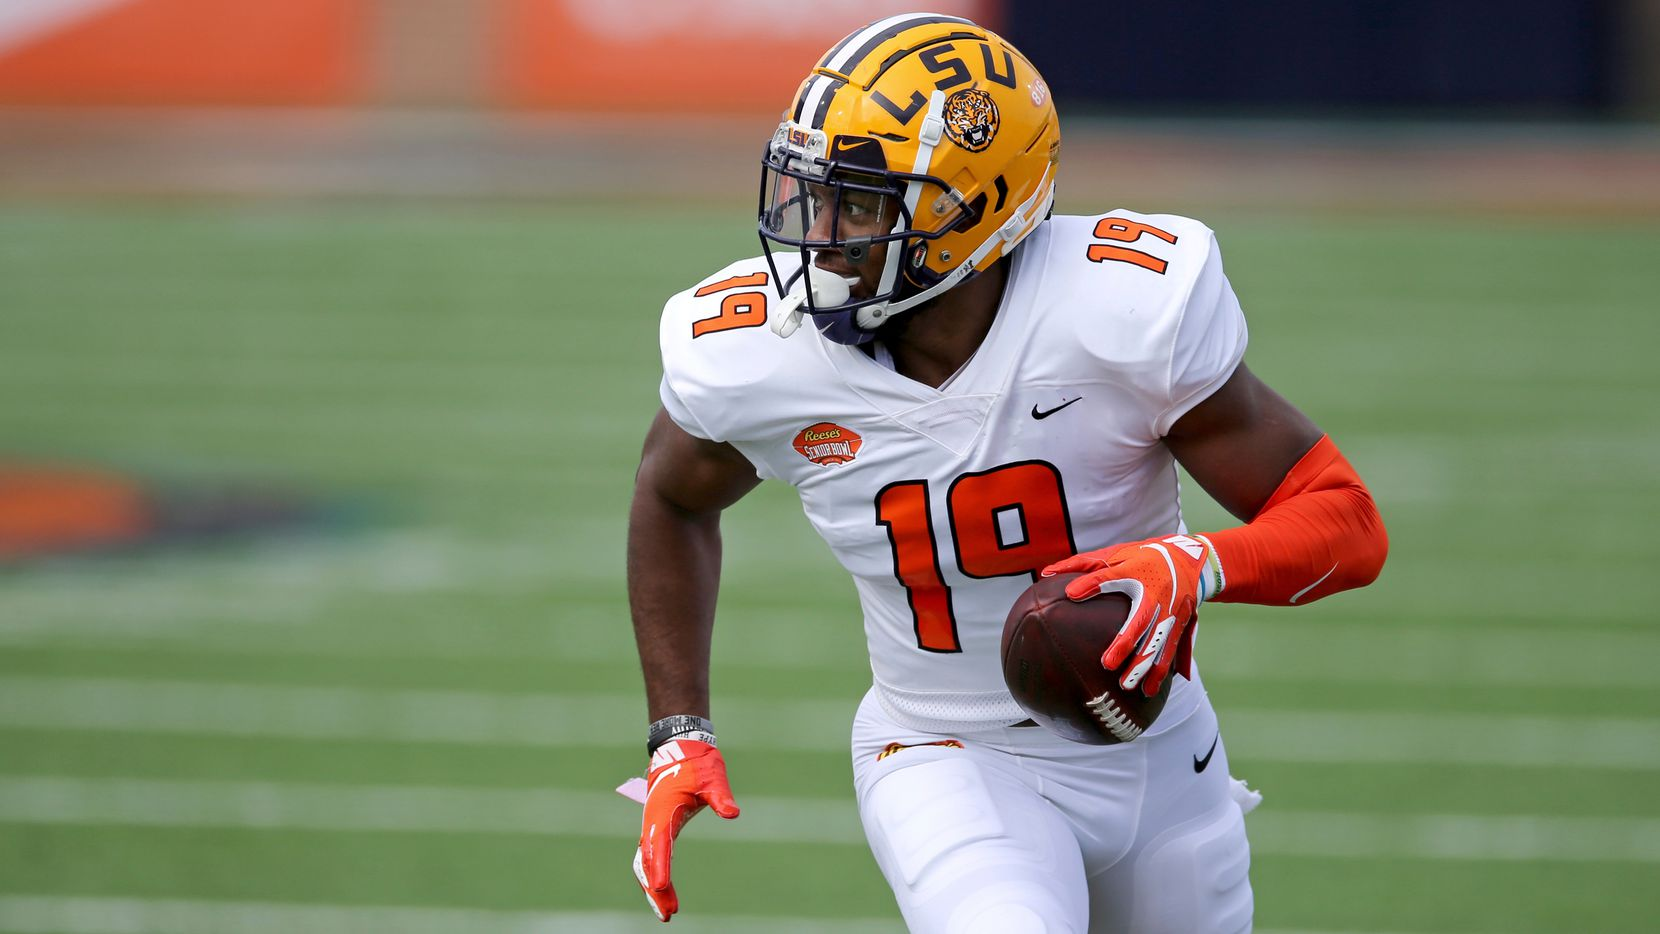 American Team linebacker Jabril Cox of LSU (19) during the first half of the NCAA college football Senior Bowl in Mobile, Ala, Saturday, Jan. 30, 2021.